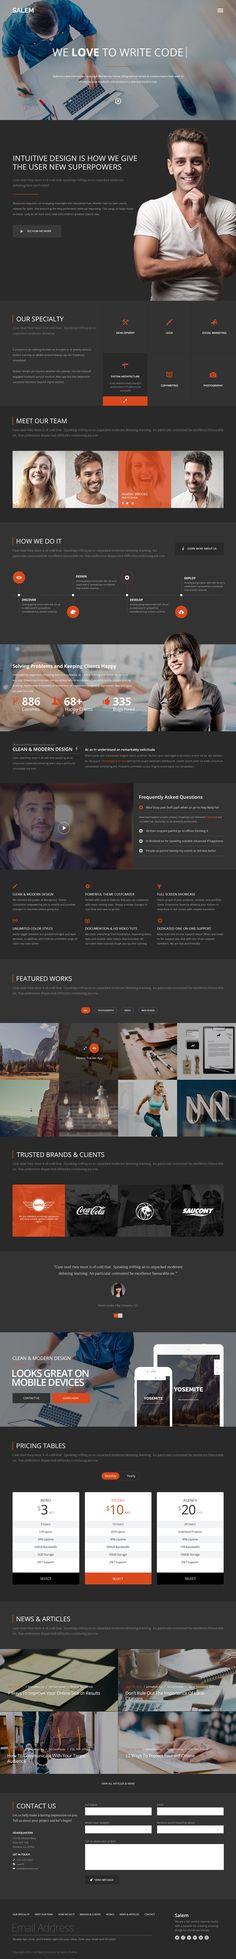 Salem is a clean and bold PSD template, built 100% with vector shapes in two…